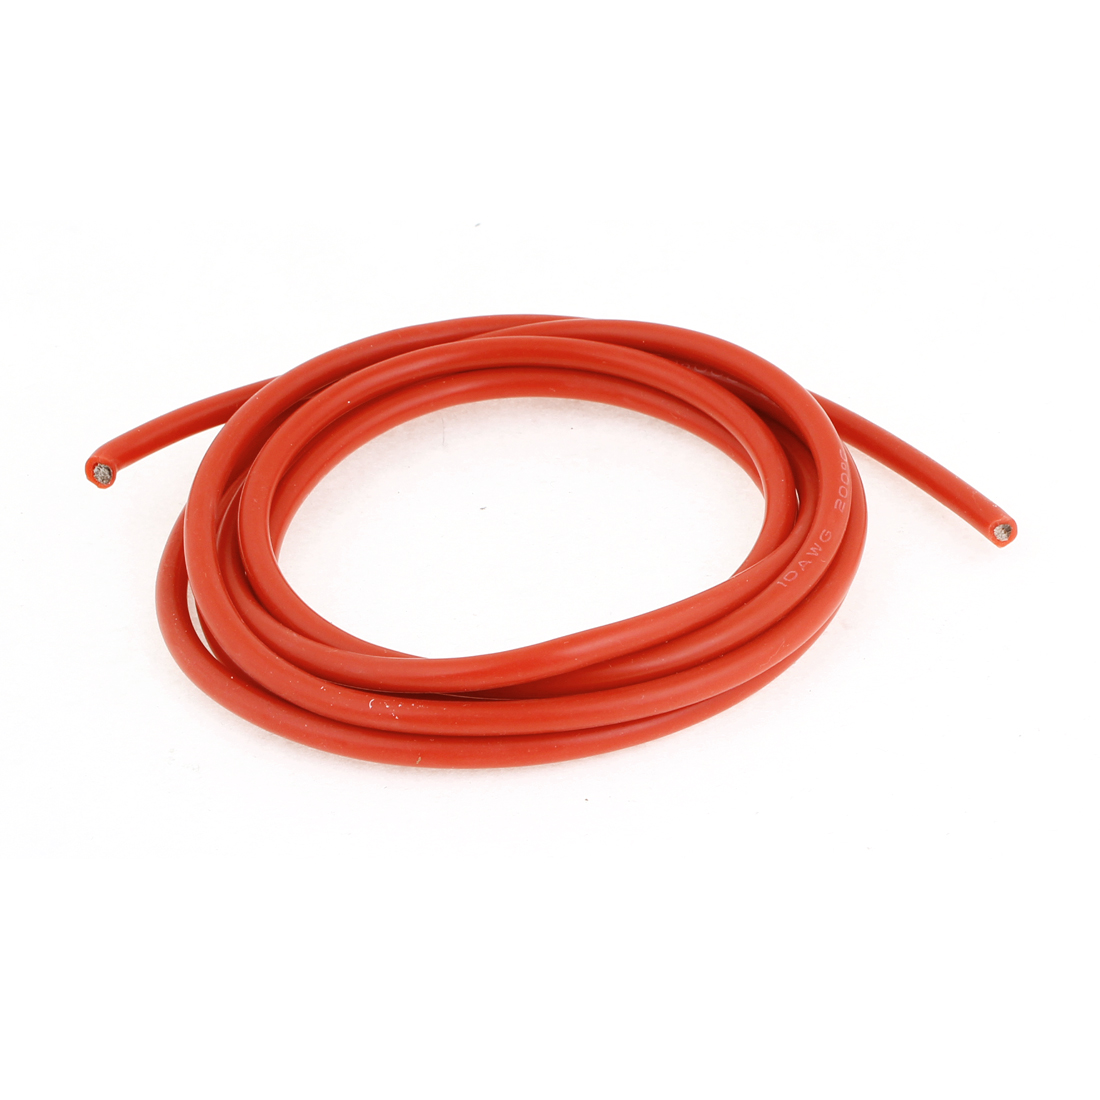 Electric Equip Part 10# Silicone Resin Cover Copper Core Red Wire 78.7""